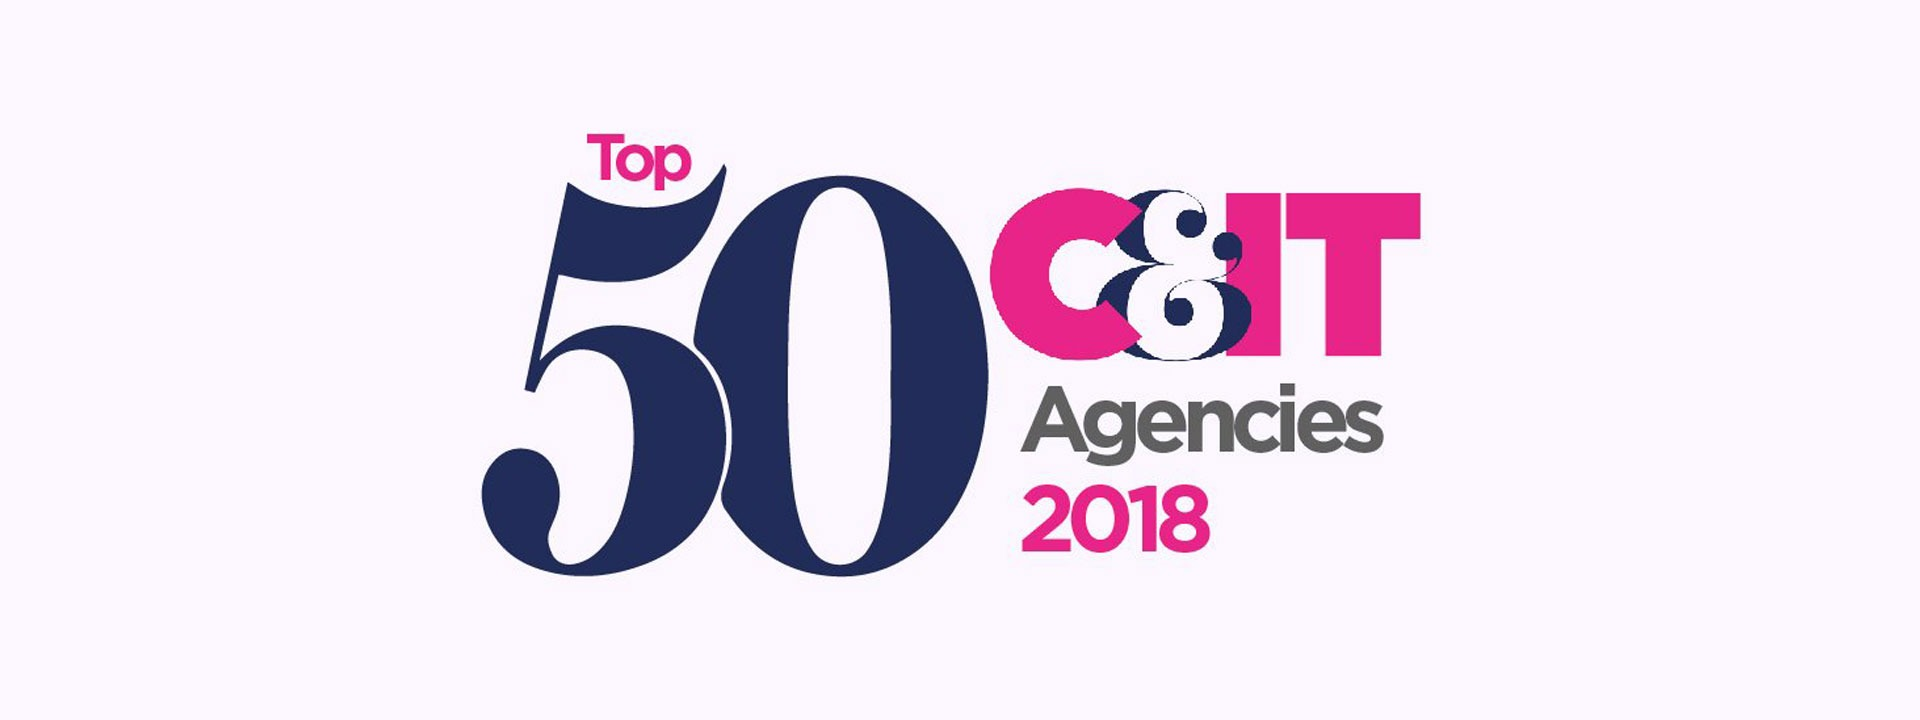 C&IT's Top 50 Agency List